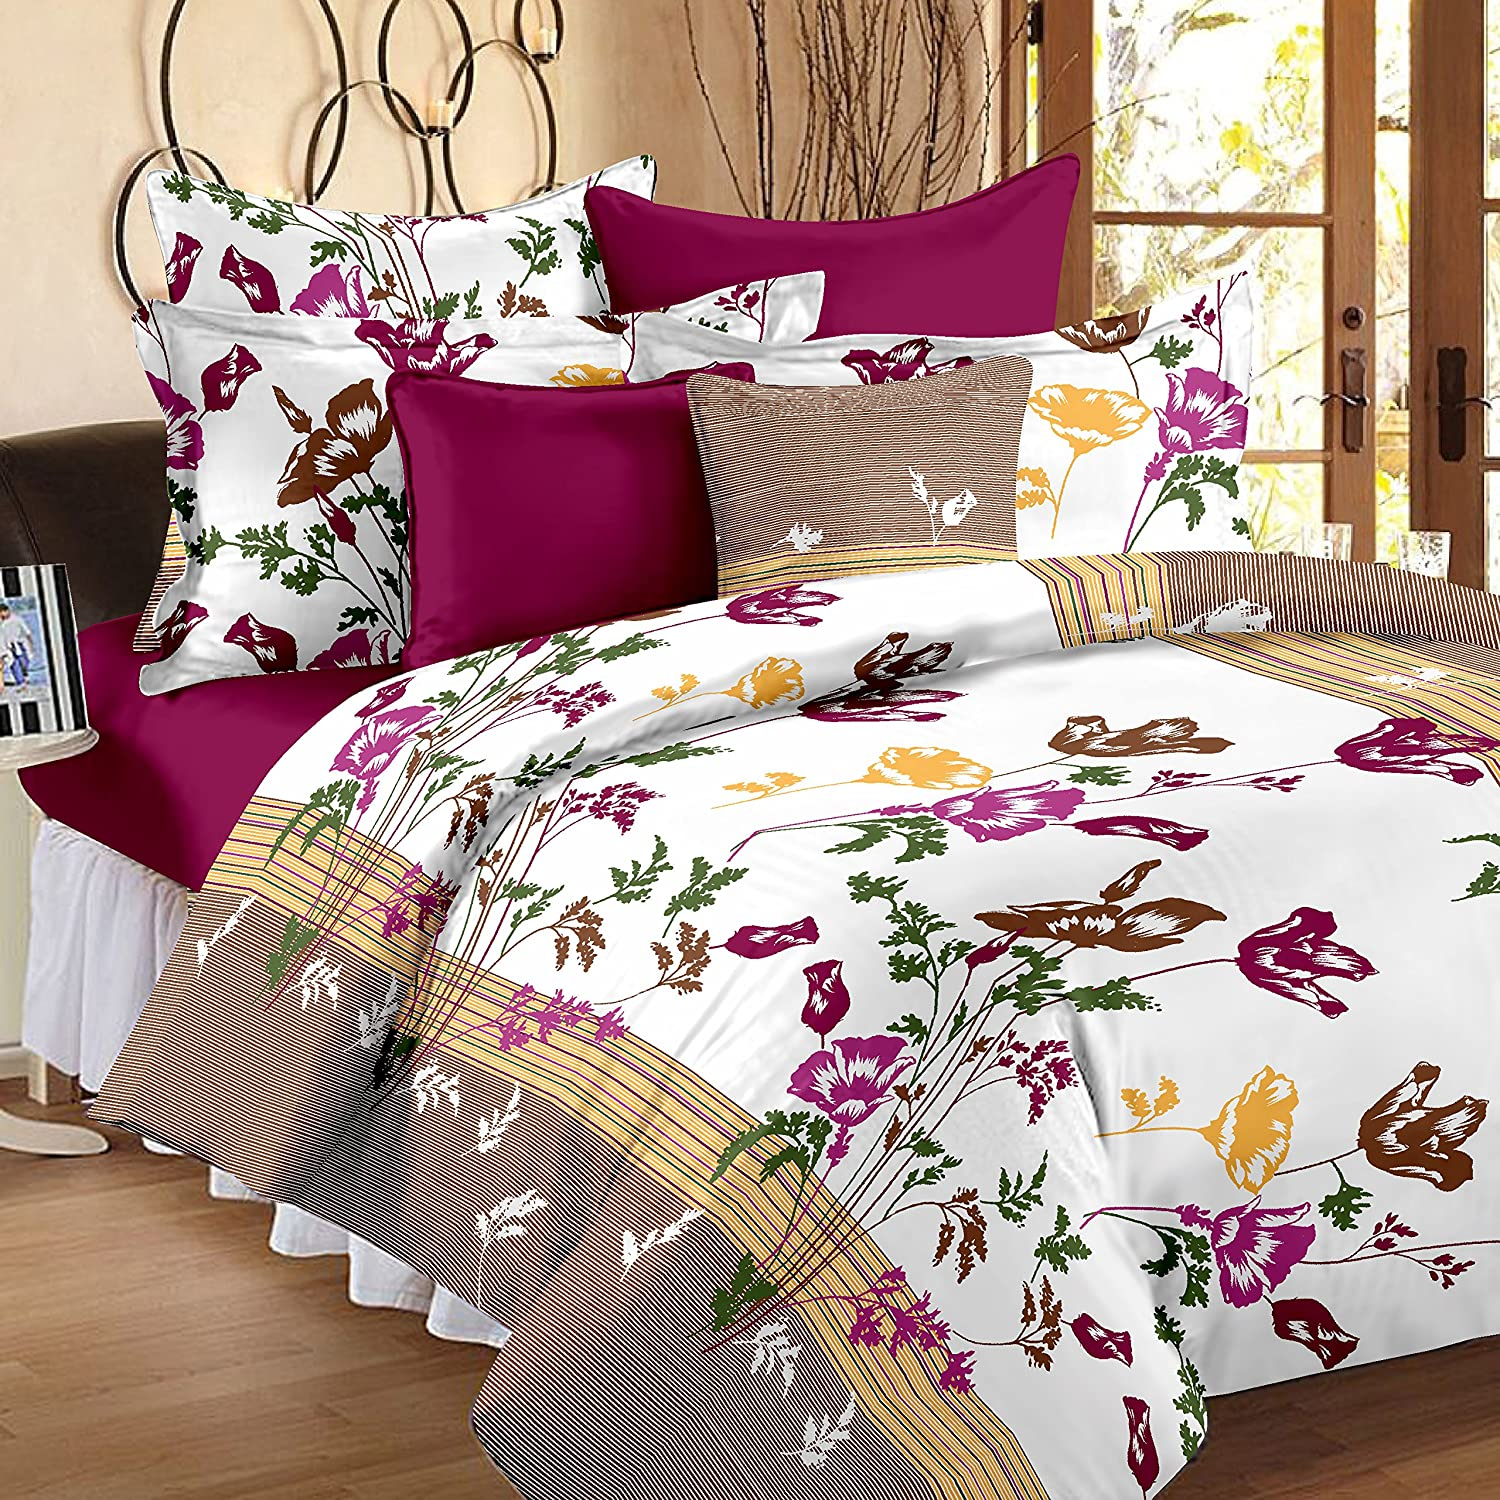 Bed sheets with price - Story Home Cotton Floral 120 Tc 100 Cotton Double Bedsheet With 2 Pillow Covers Multicolor